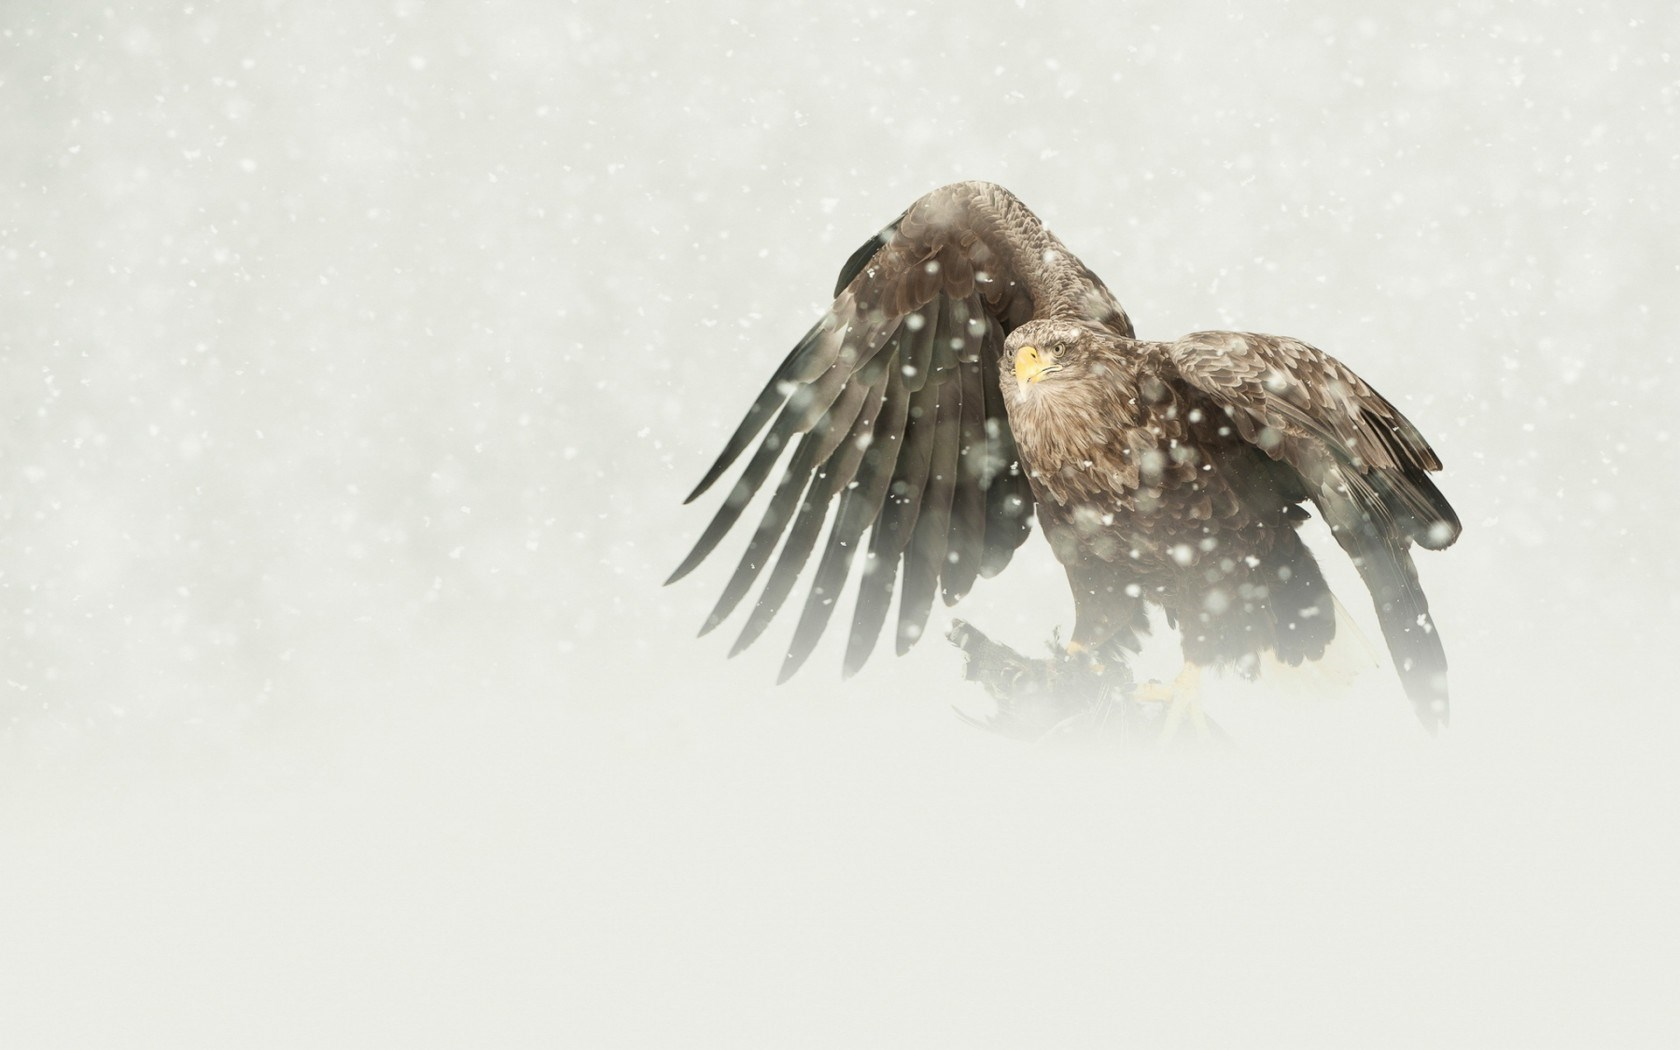 Bird Eagle Snowfall Snowflakes Winter HD Wallpaper